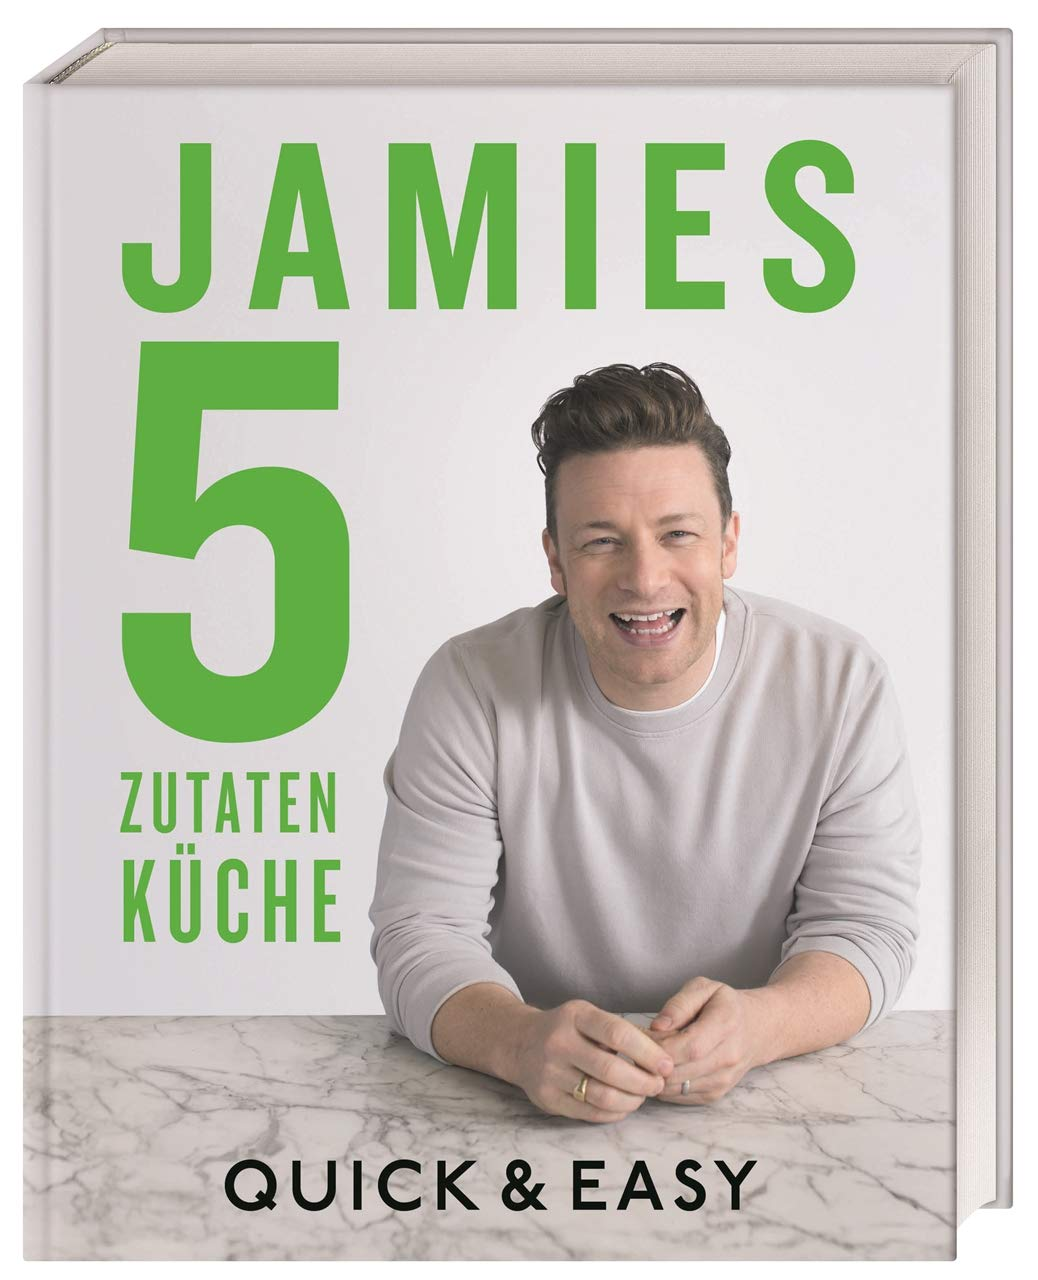 Jamies 16-Zutaten-Küche: Quick & Easy: Amazon.es: Oliver, Jamie